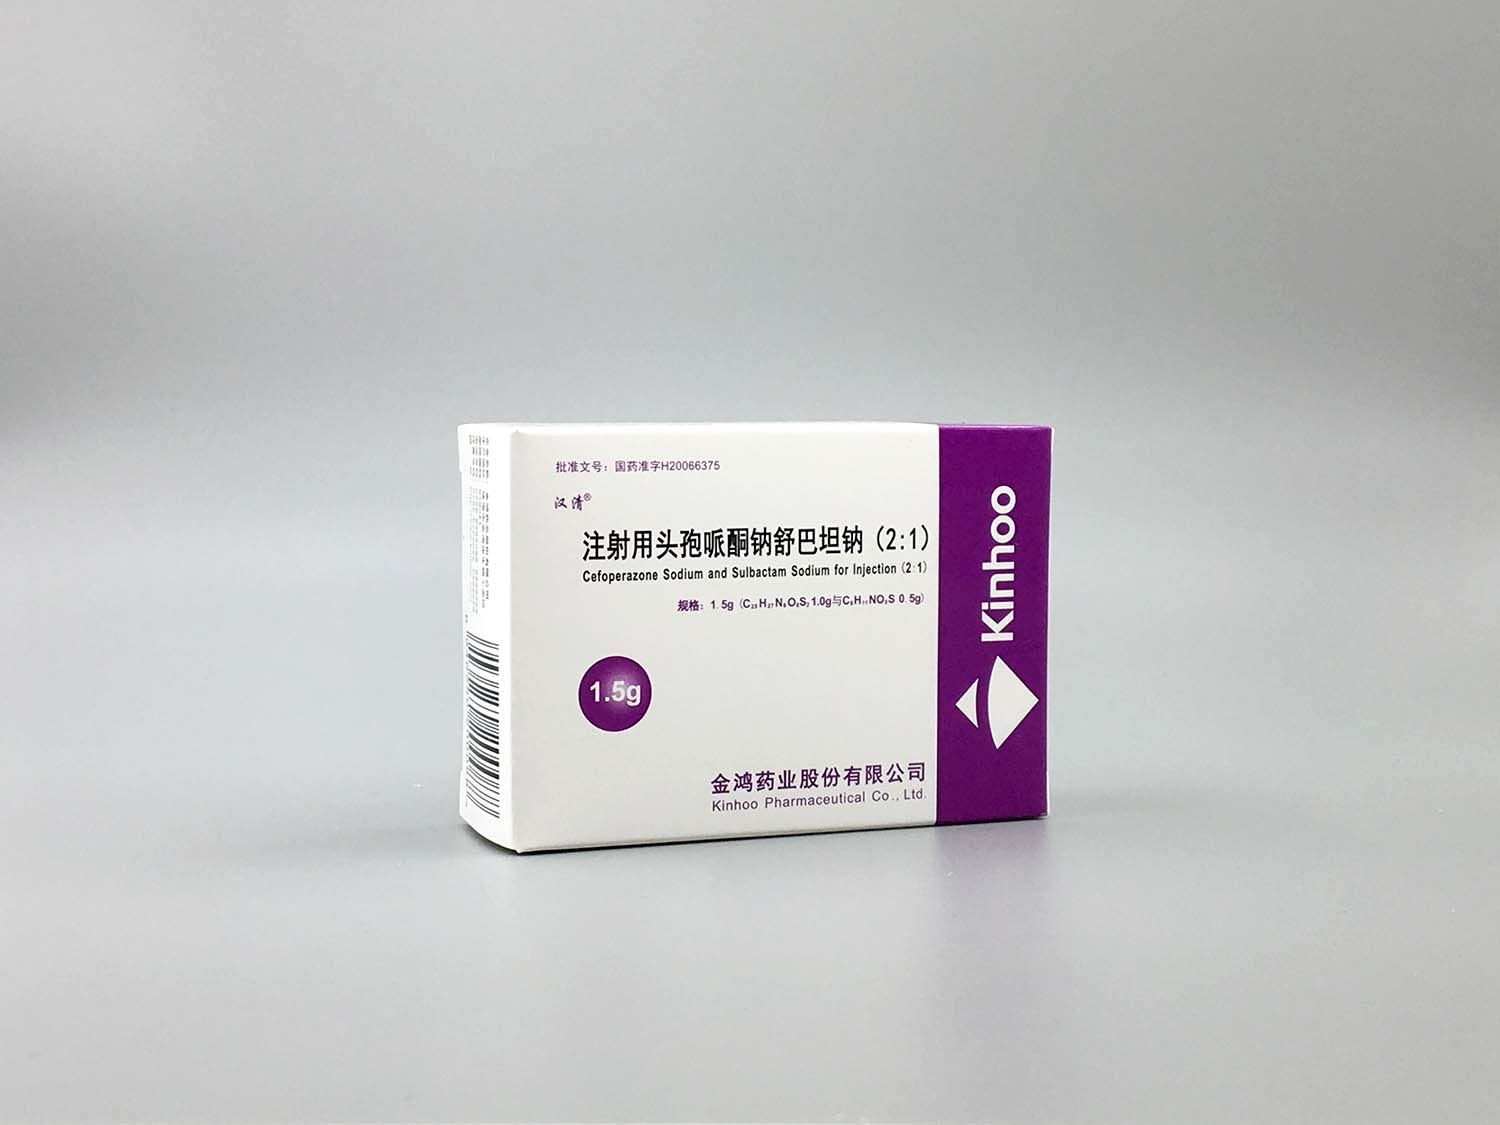 Cefoperazone Sodium and Sulbactam Sodium for Injection(2:1)